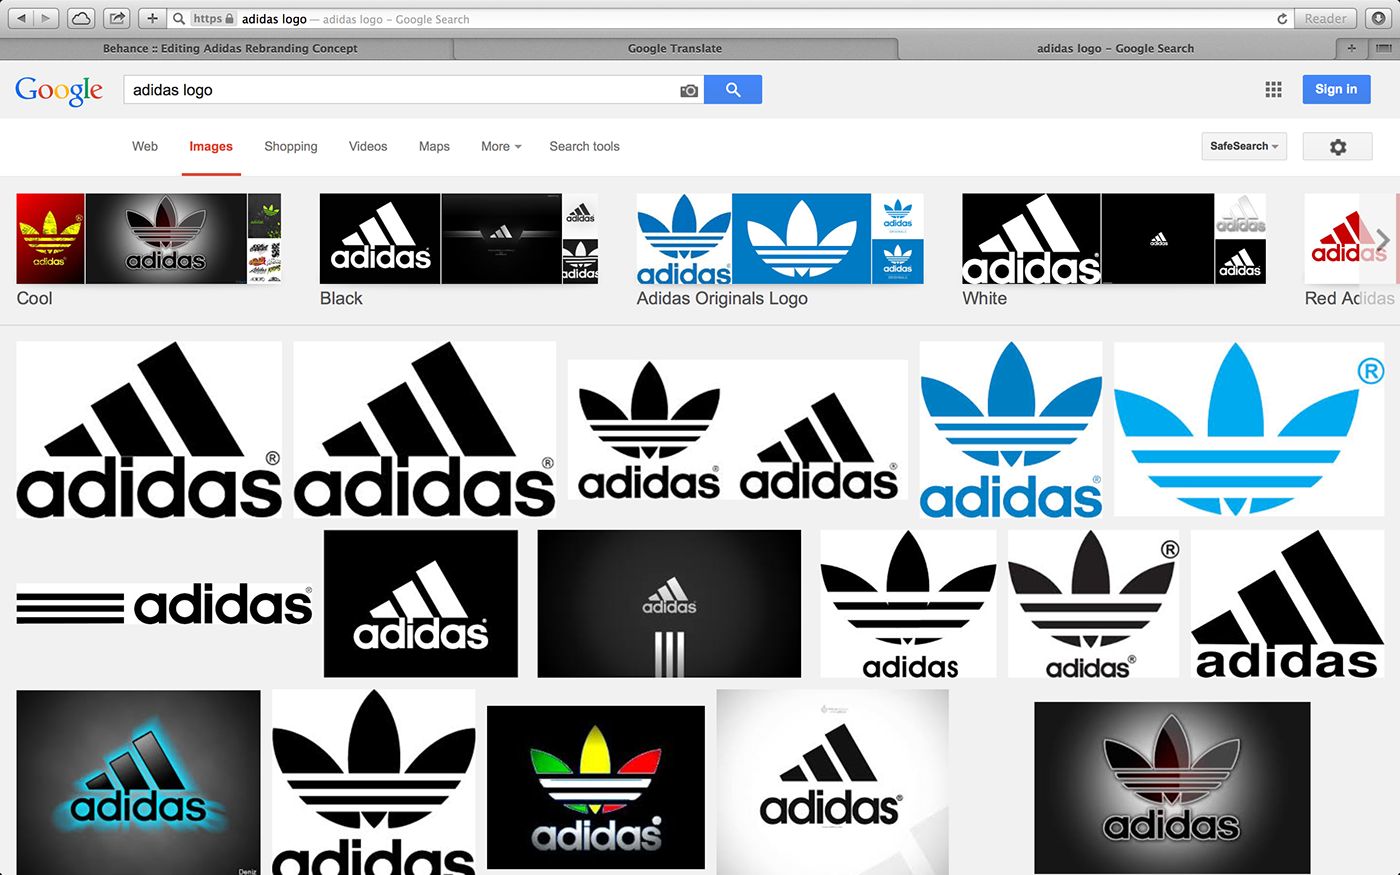 dc92eaf87ab Results of the search query  adidas logo  in Google. Only one of the image  results is the main logo of Adidas.